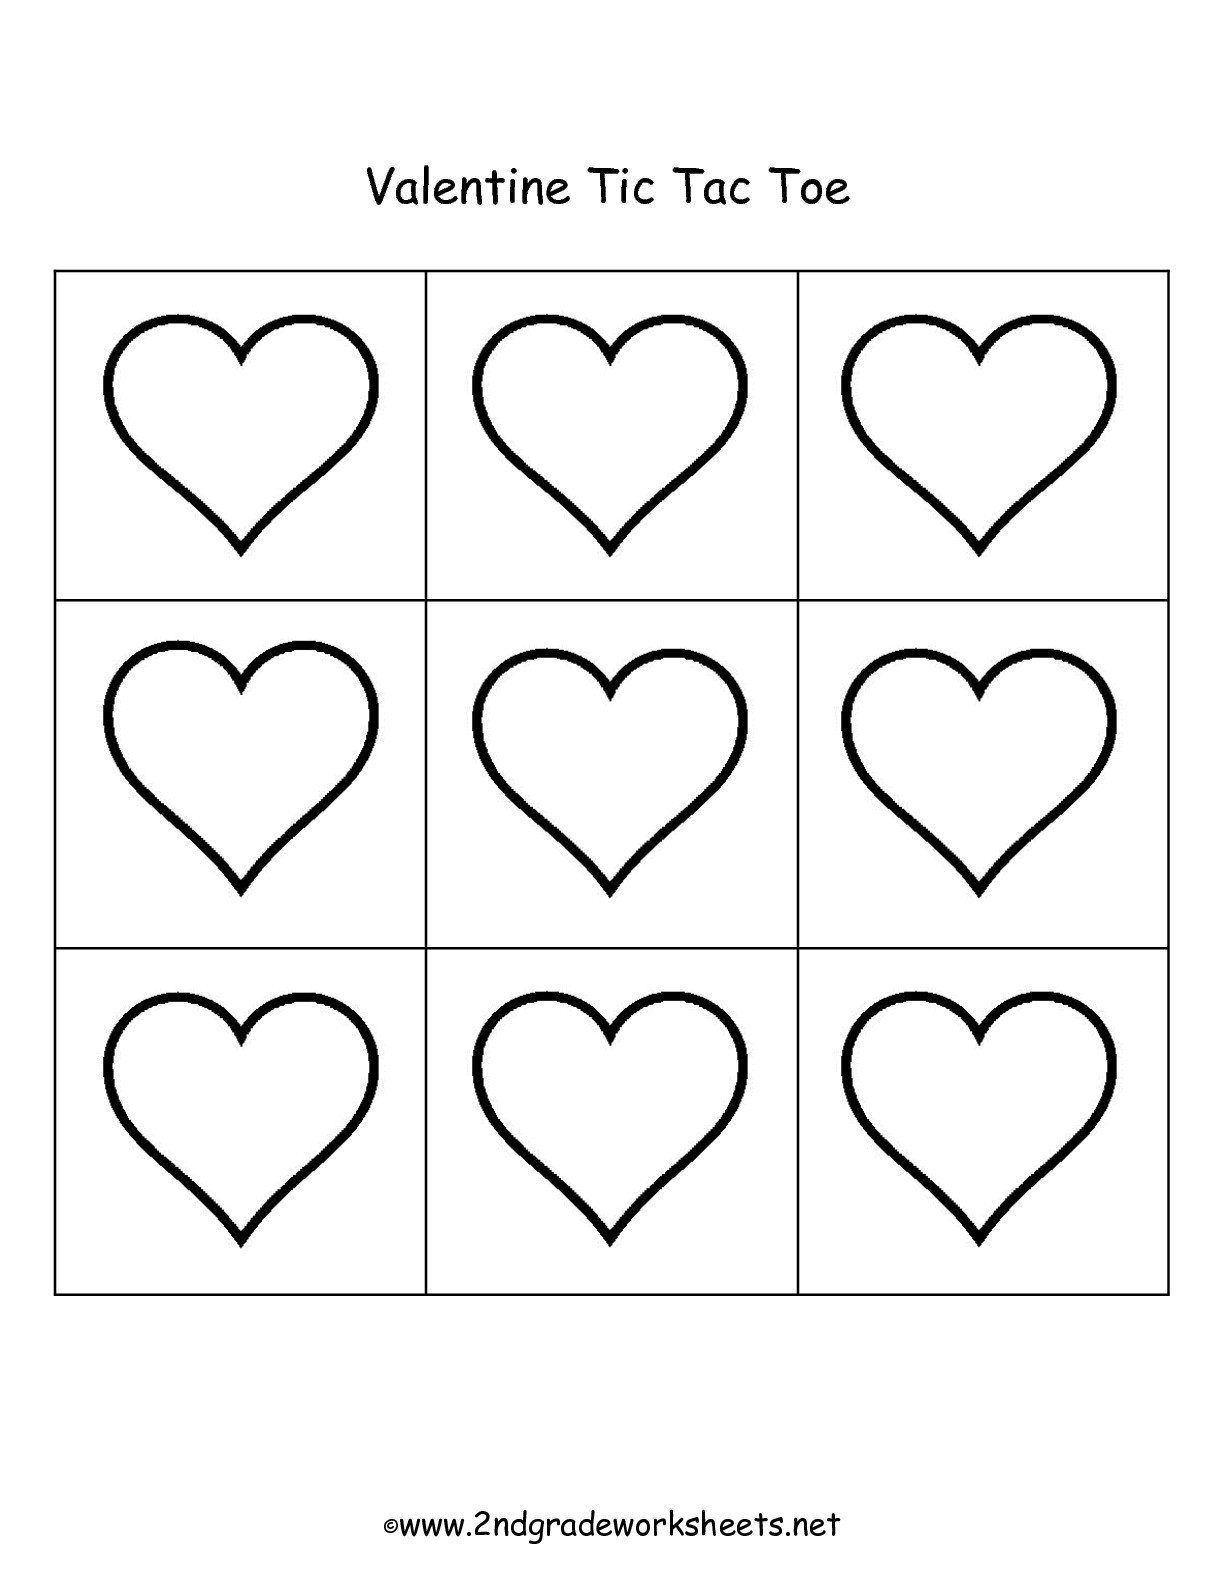 Free Valentine Worksheets for Kindergarten Math Problem Search Grade 8 Math Worksheets Rational Numbers